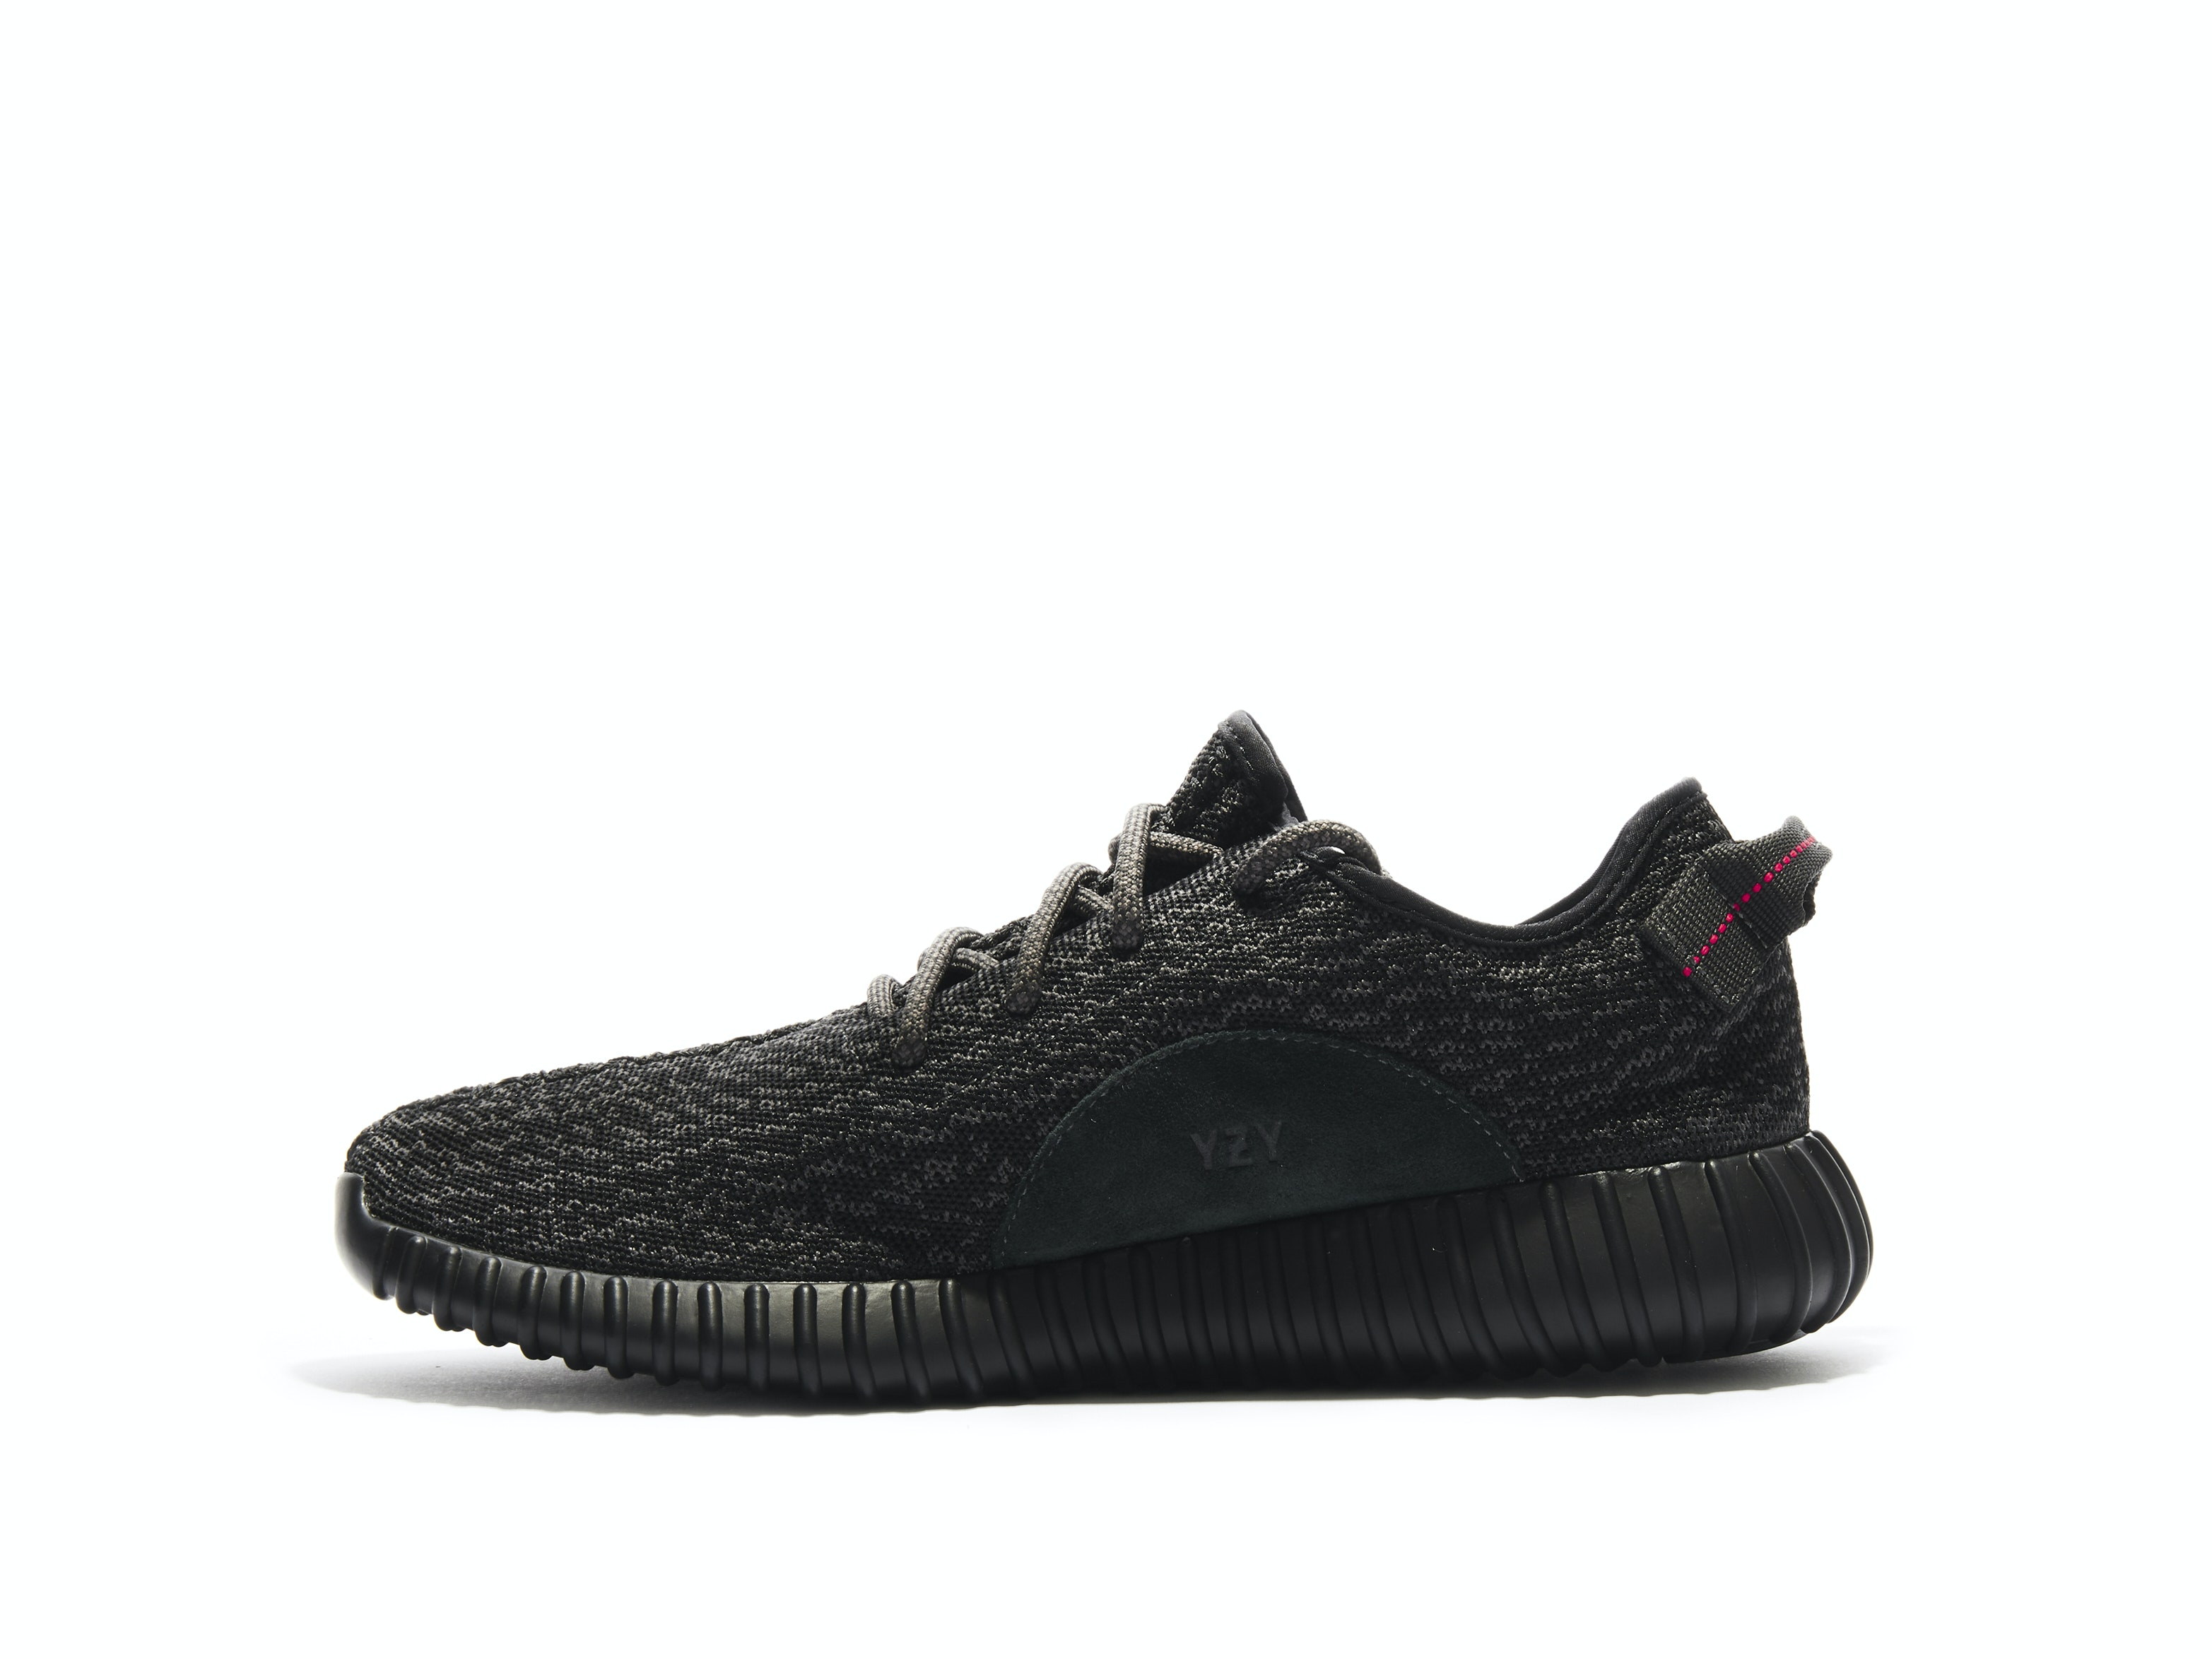 b44aeab79a3cd Yeezy Boost 350 Pirate Black (2016). 100% AuthenticAvg Delivery Time  1-2  days. Adidas   BB5350